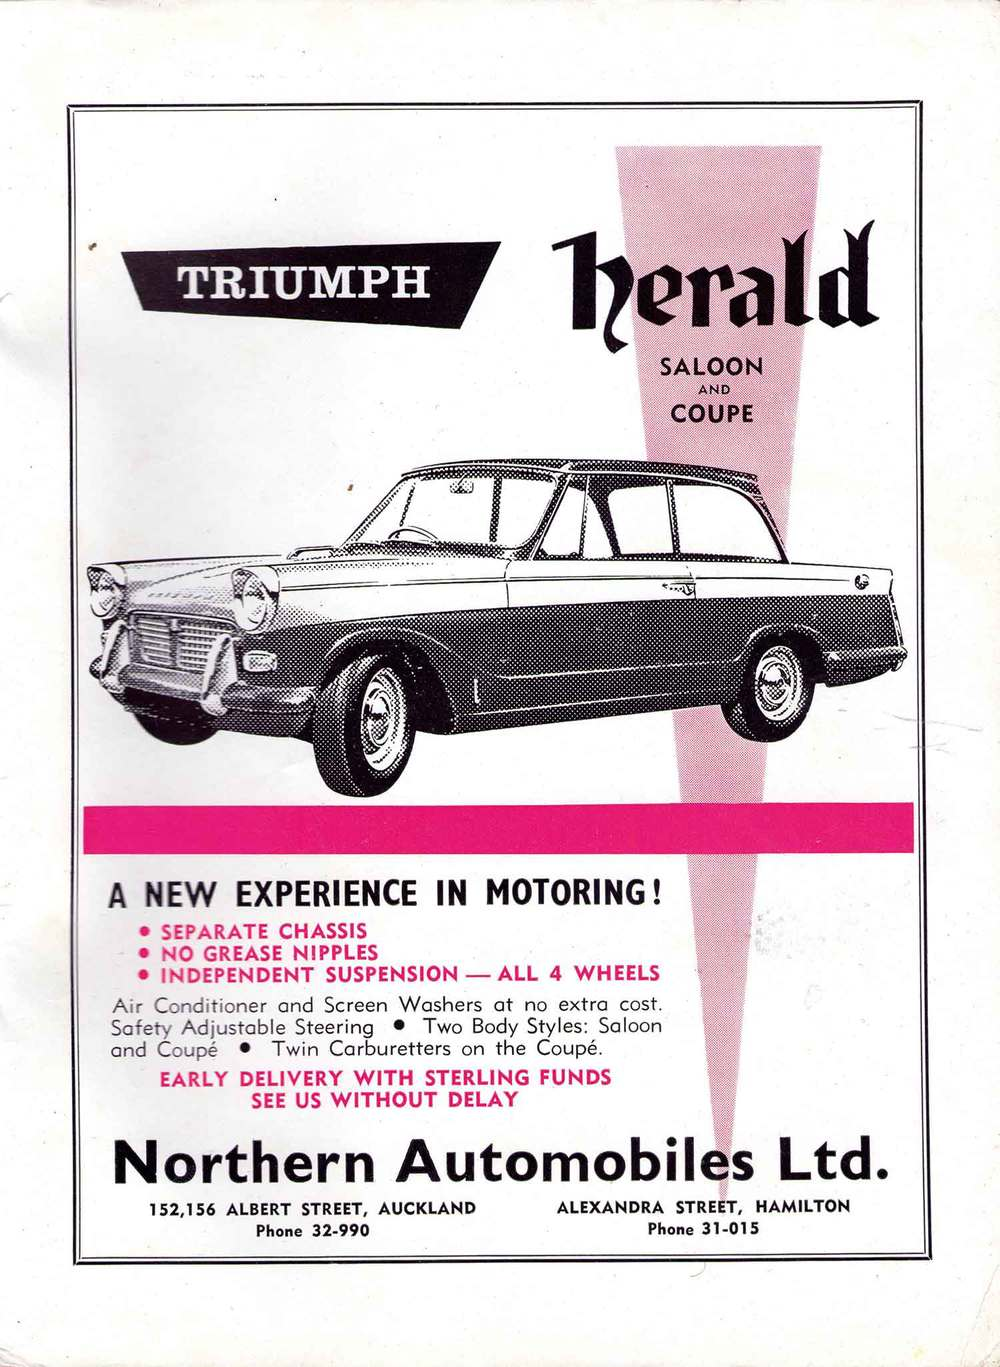 A Northern Automobiles Ltd advert from 1960 showing the original Herald